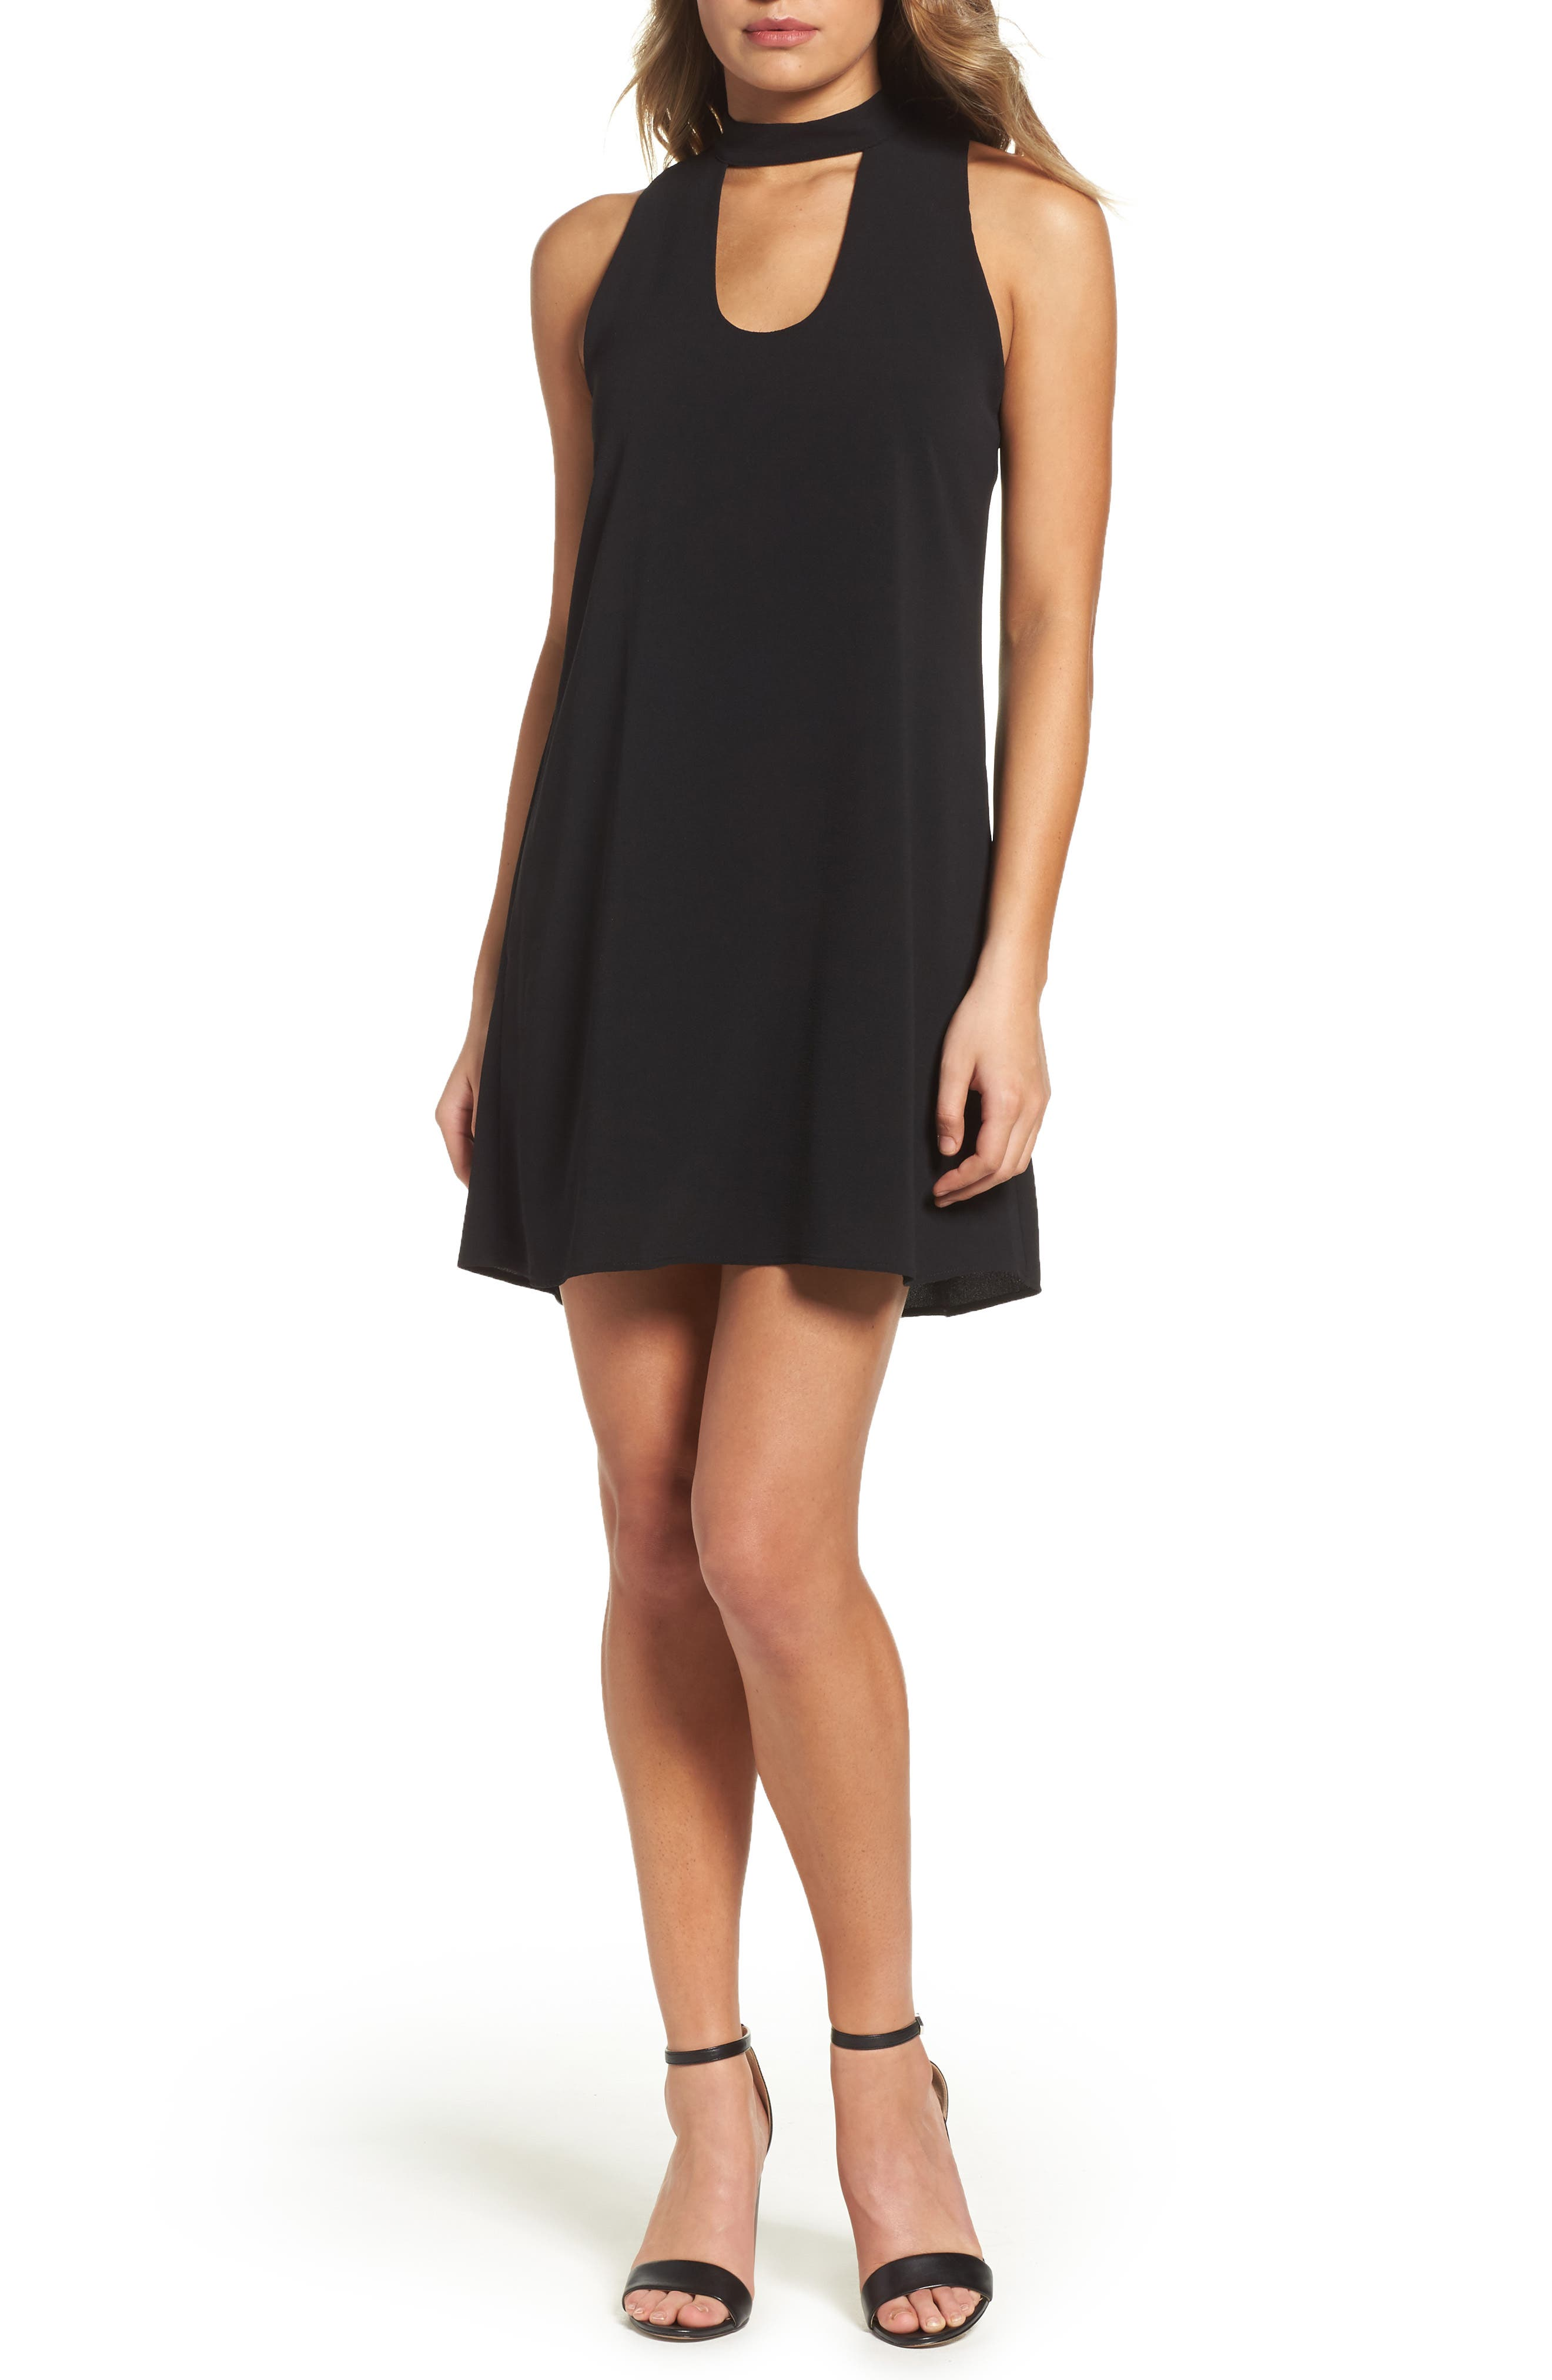 Mary & Maybel Swing Dress,                         Main,                         color, Black